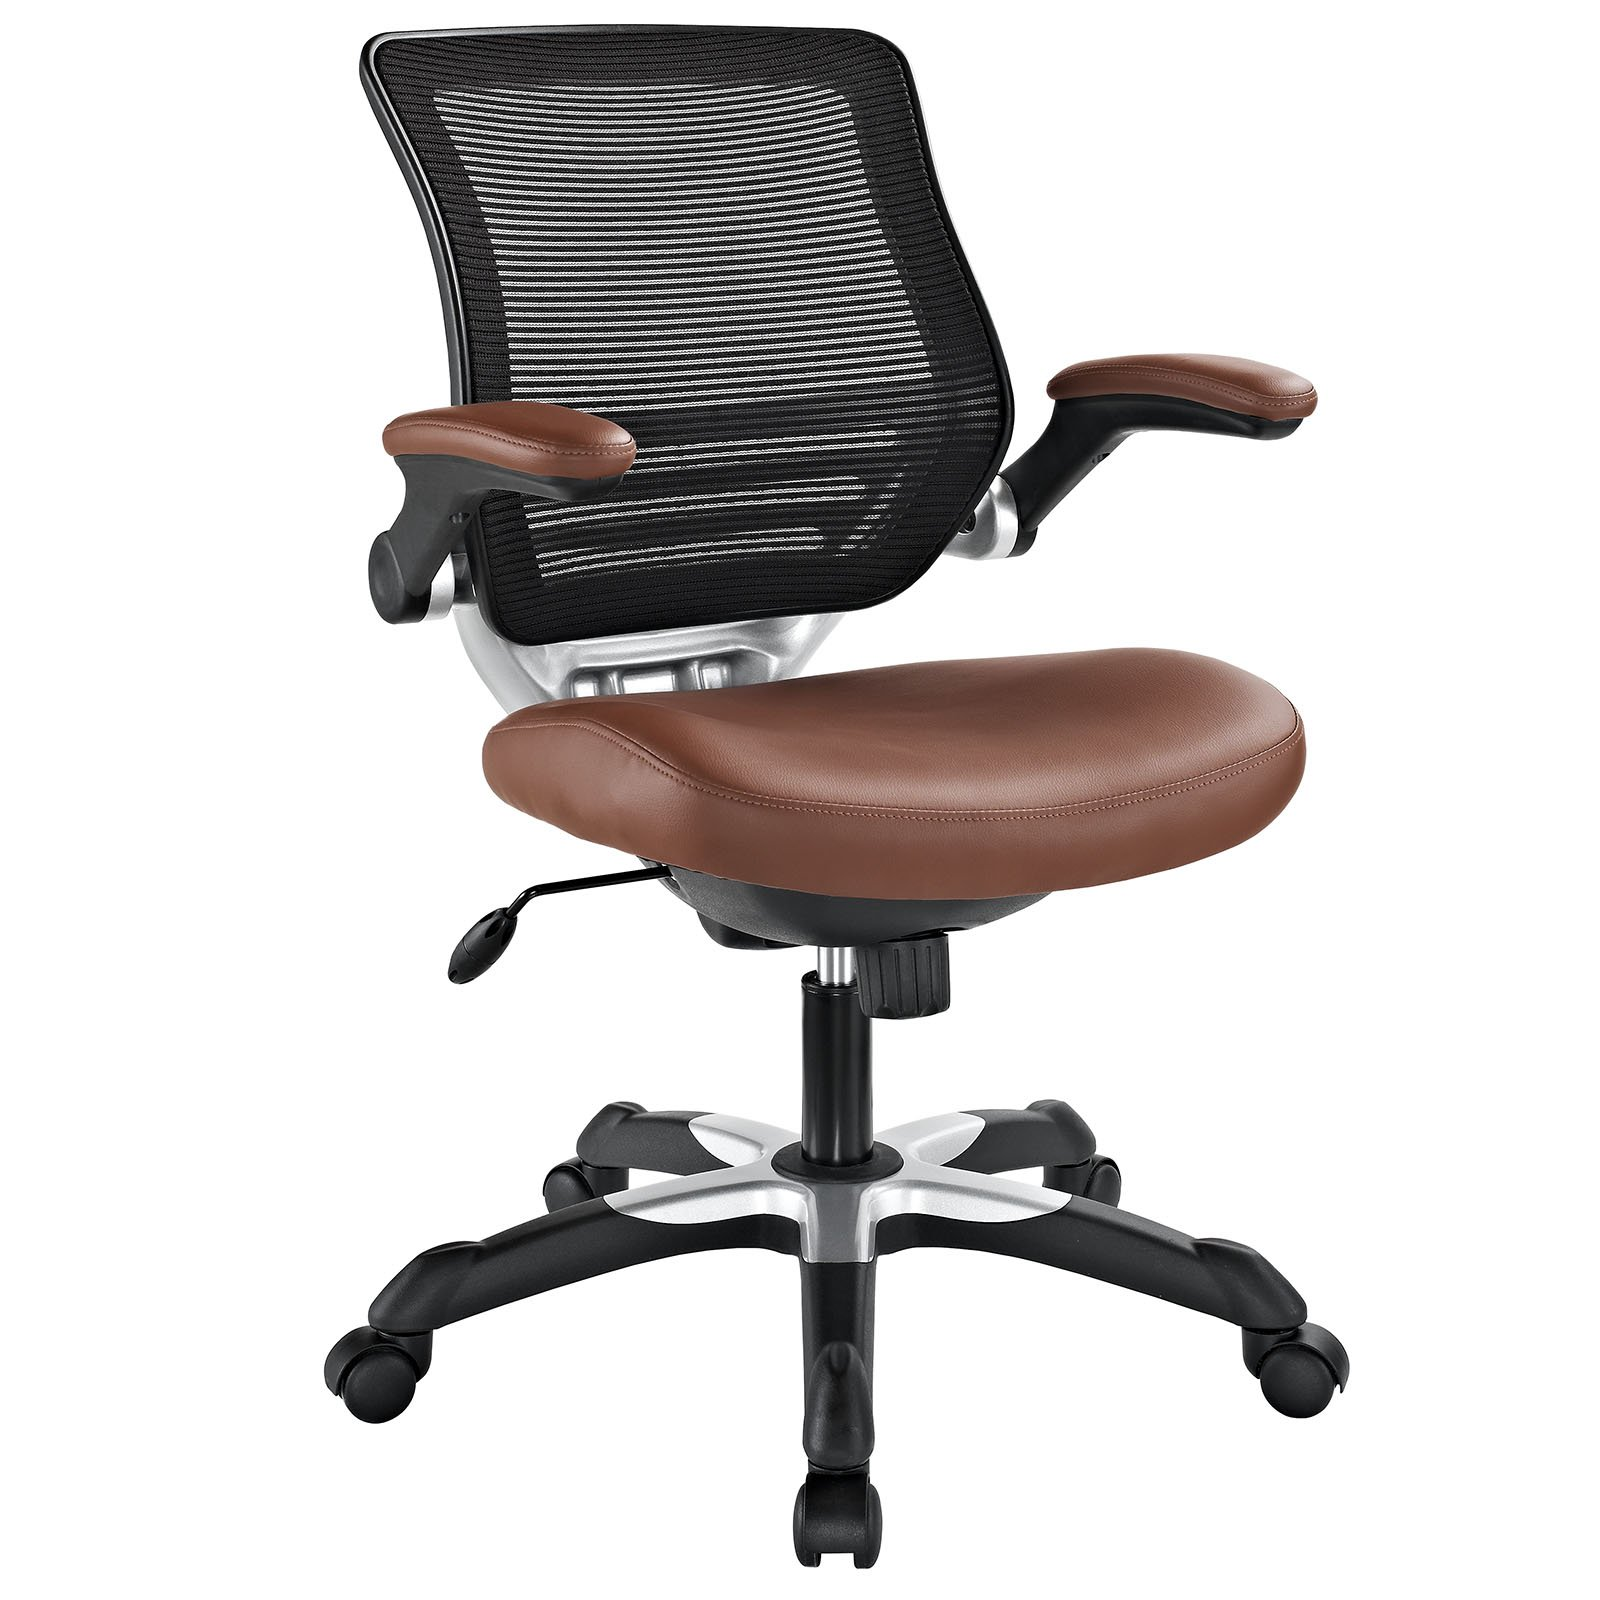 Modway Edge Mesh Back and Tan Vinyl Seat Office Chair With Flip-Up Arms - Ergonomic Desk And Computer Chair by Modway